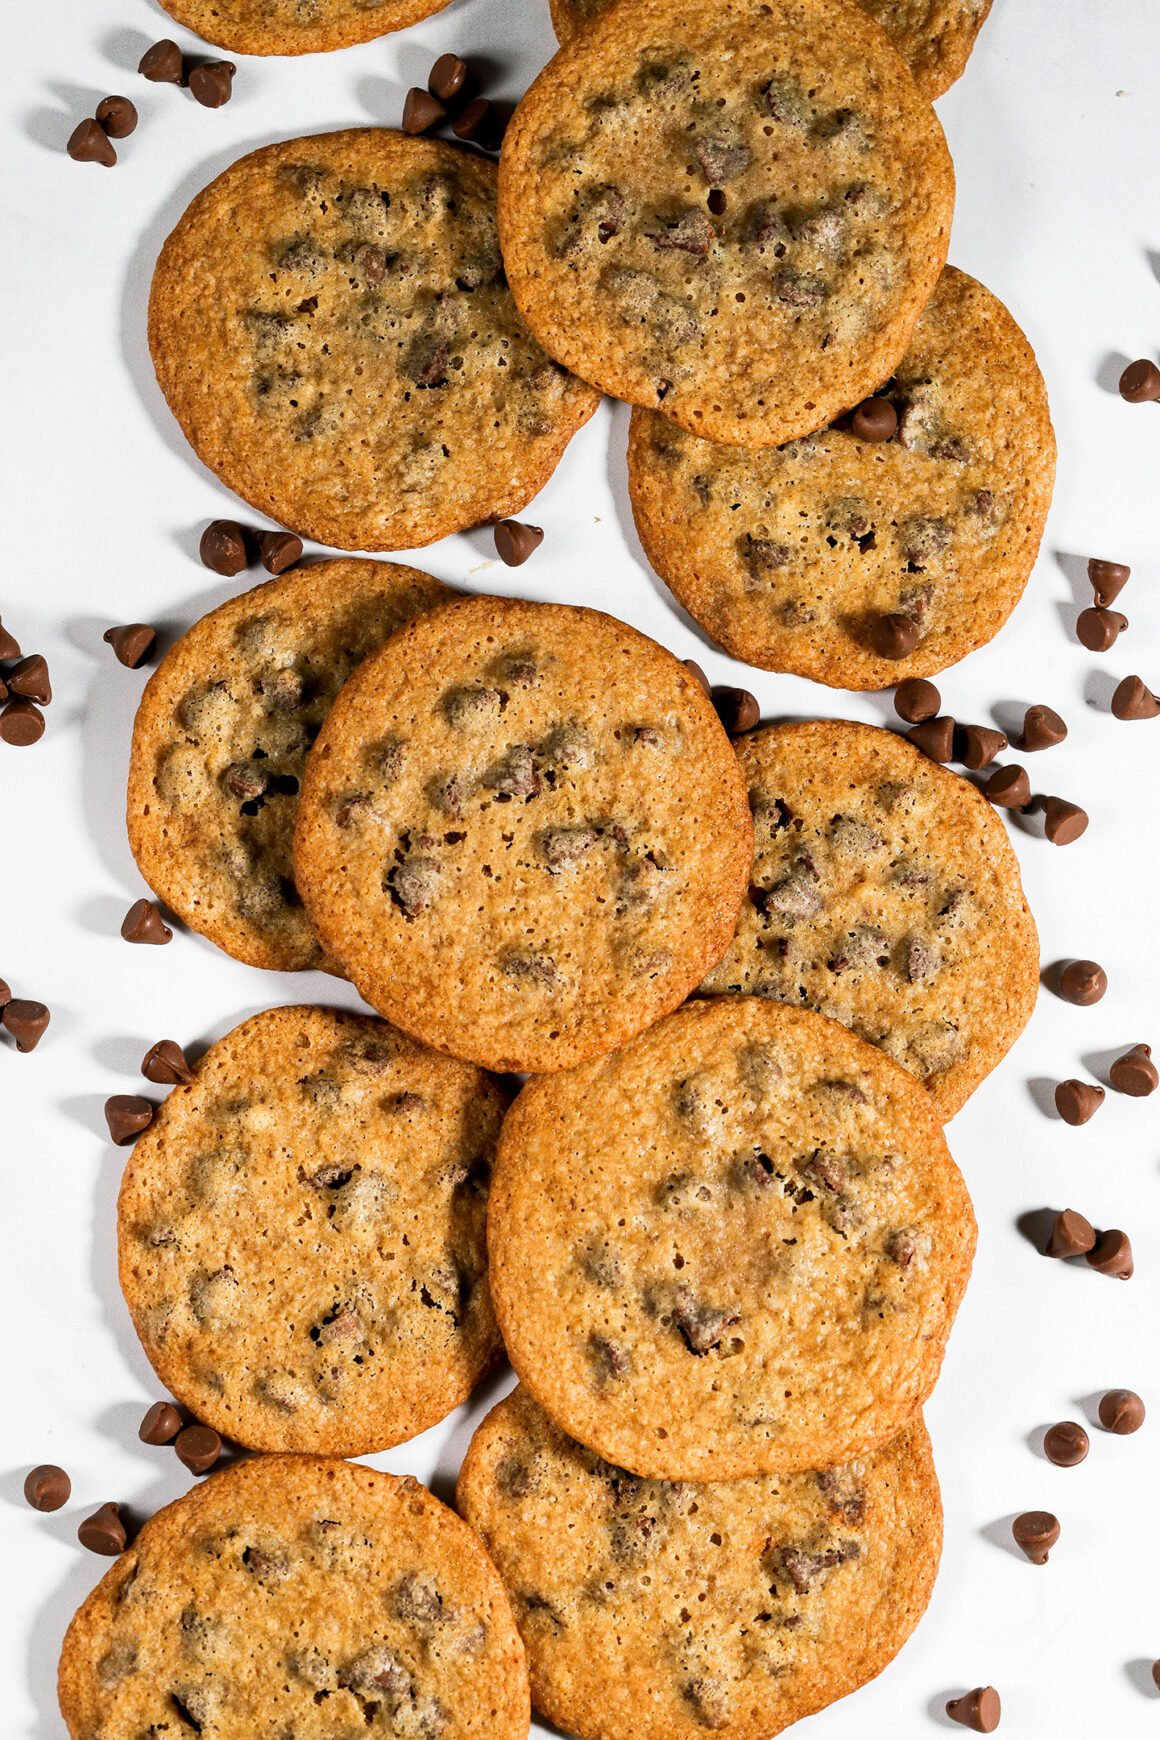 Chocolate Chip Cookies on Marble Counter